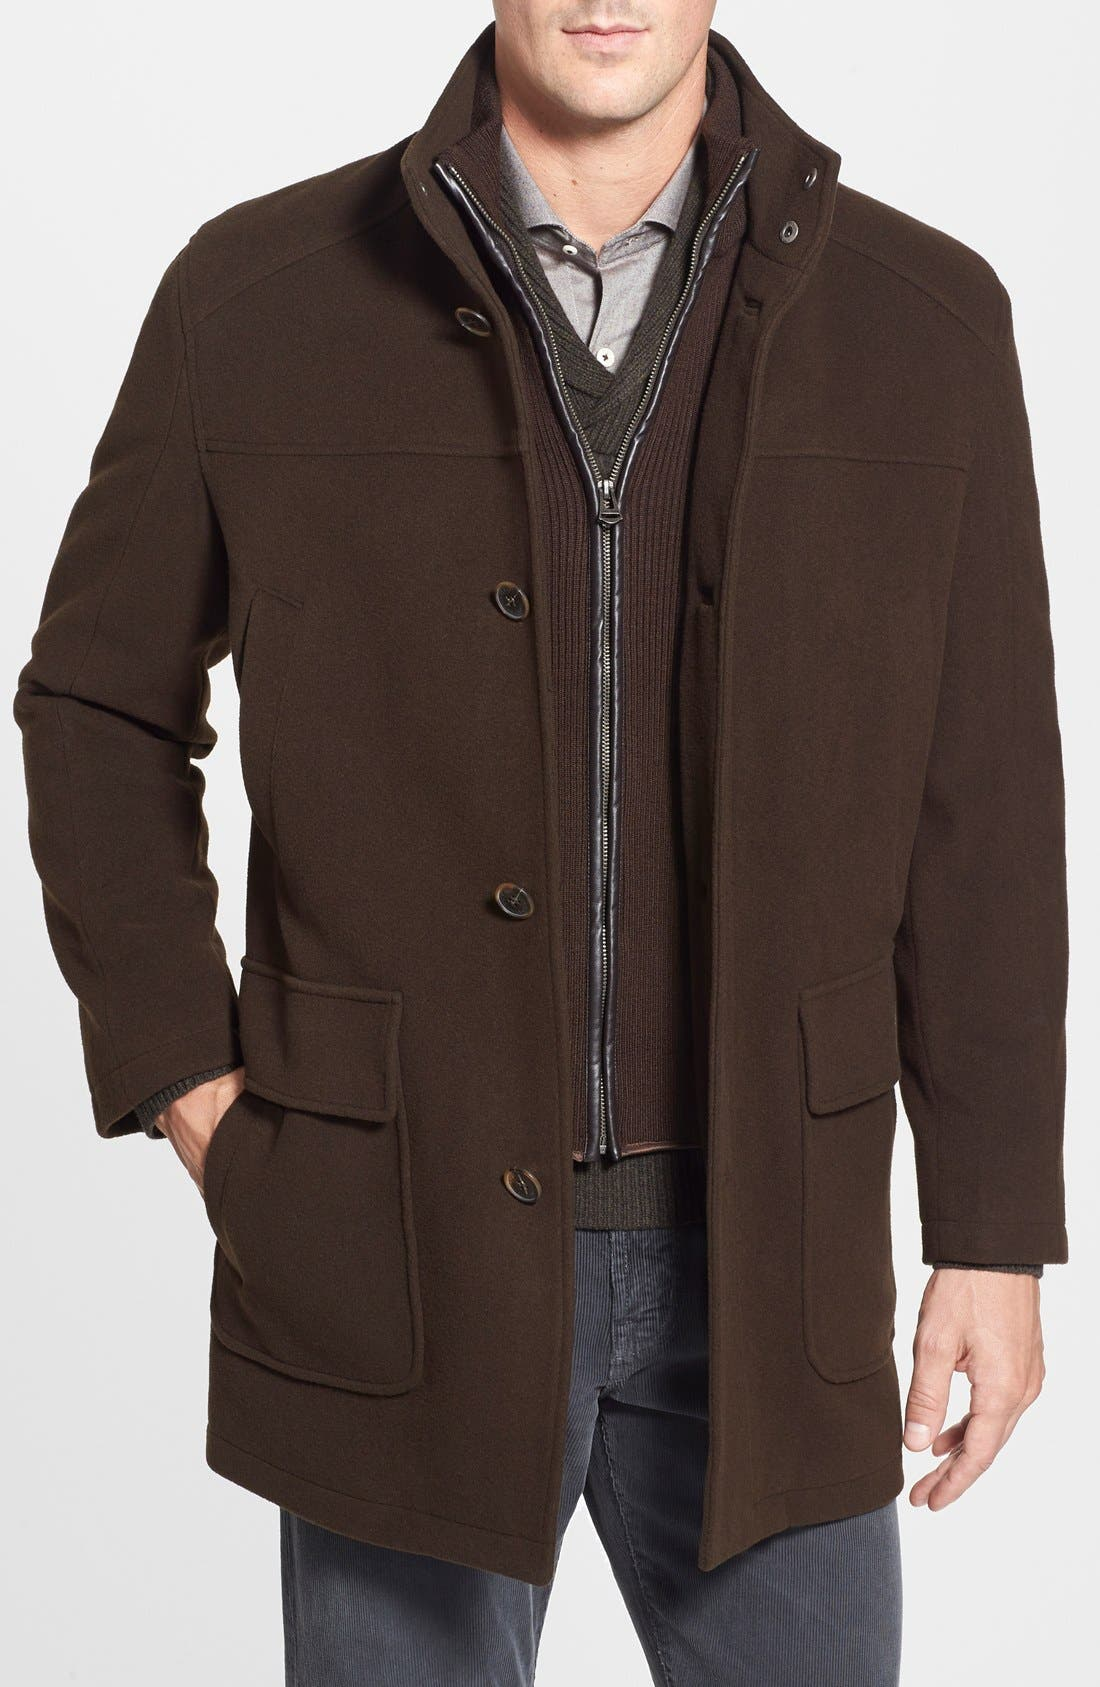 Wool Blend Topcoat with Inset Bib,                         Main,                         color,